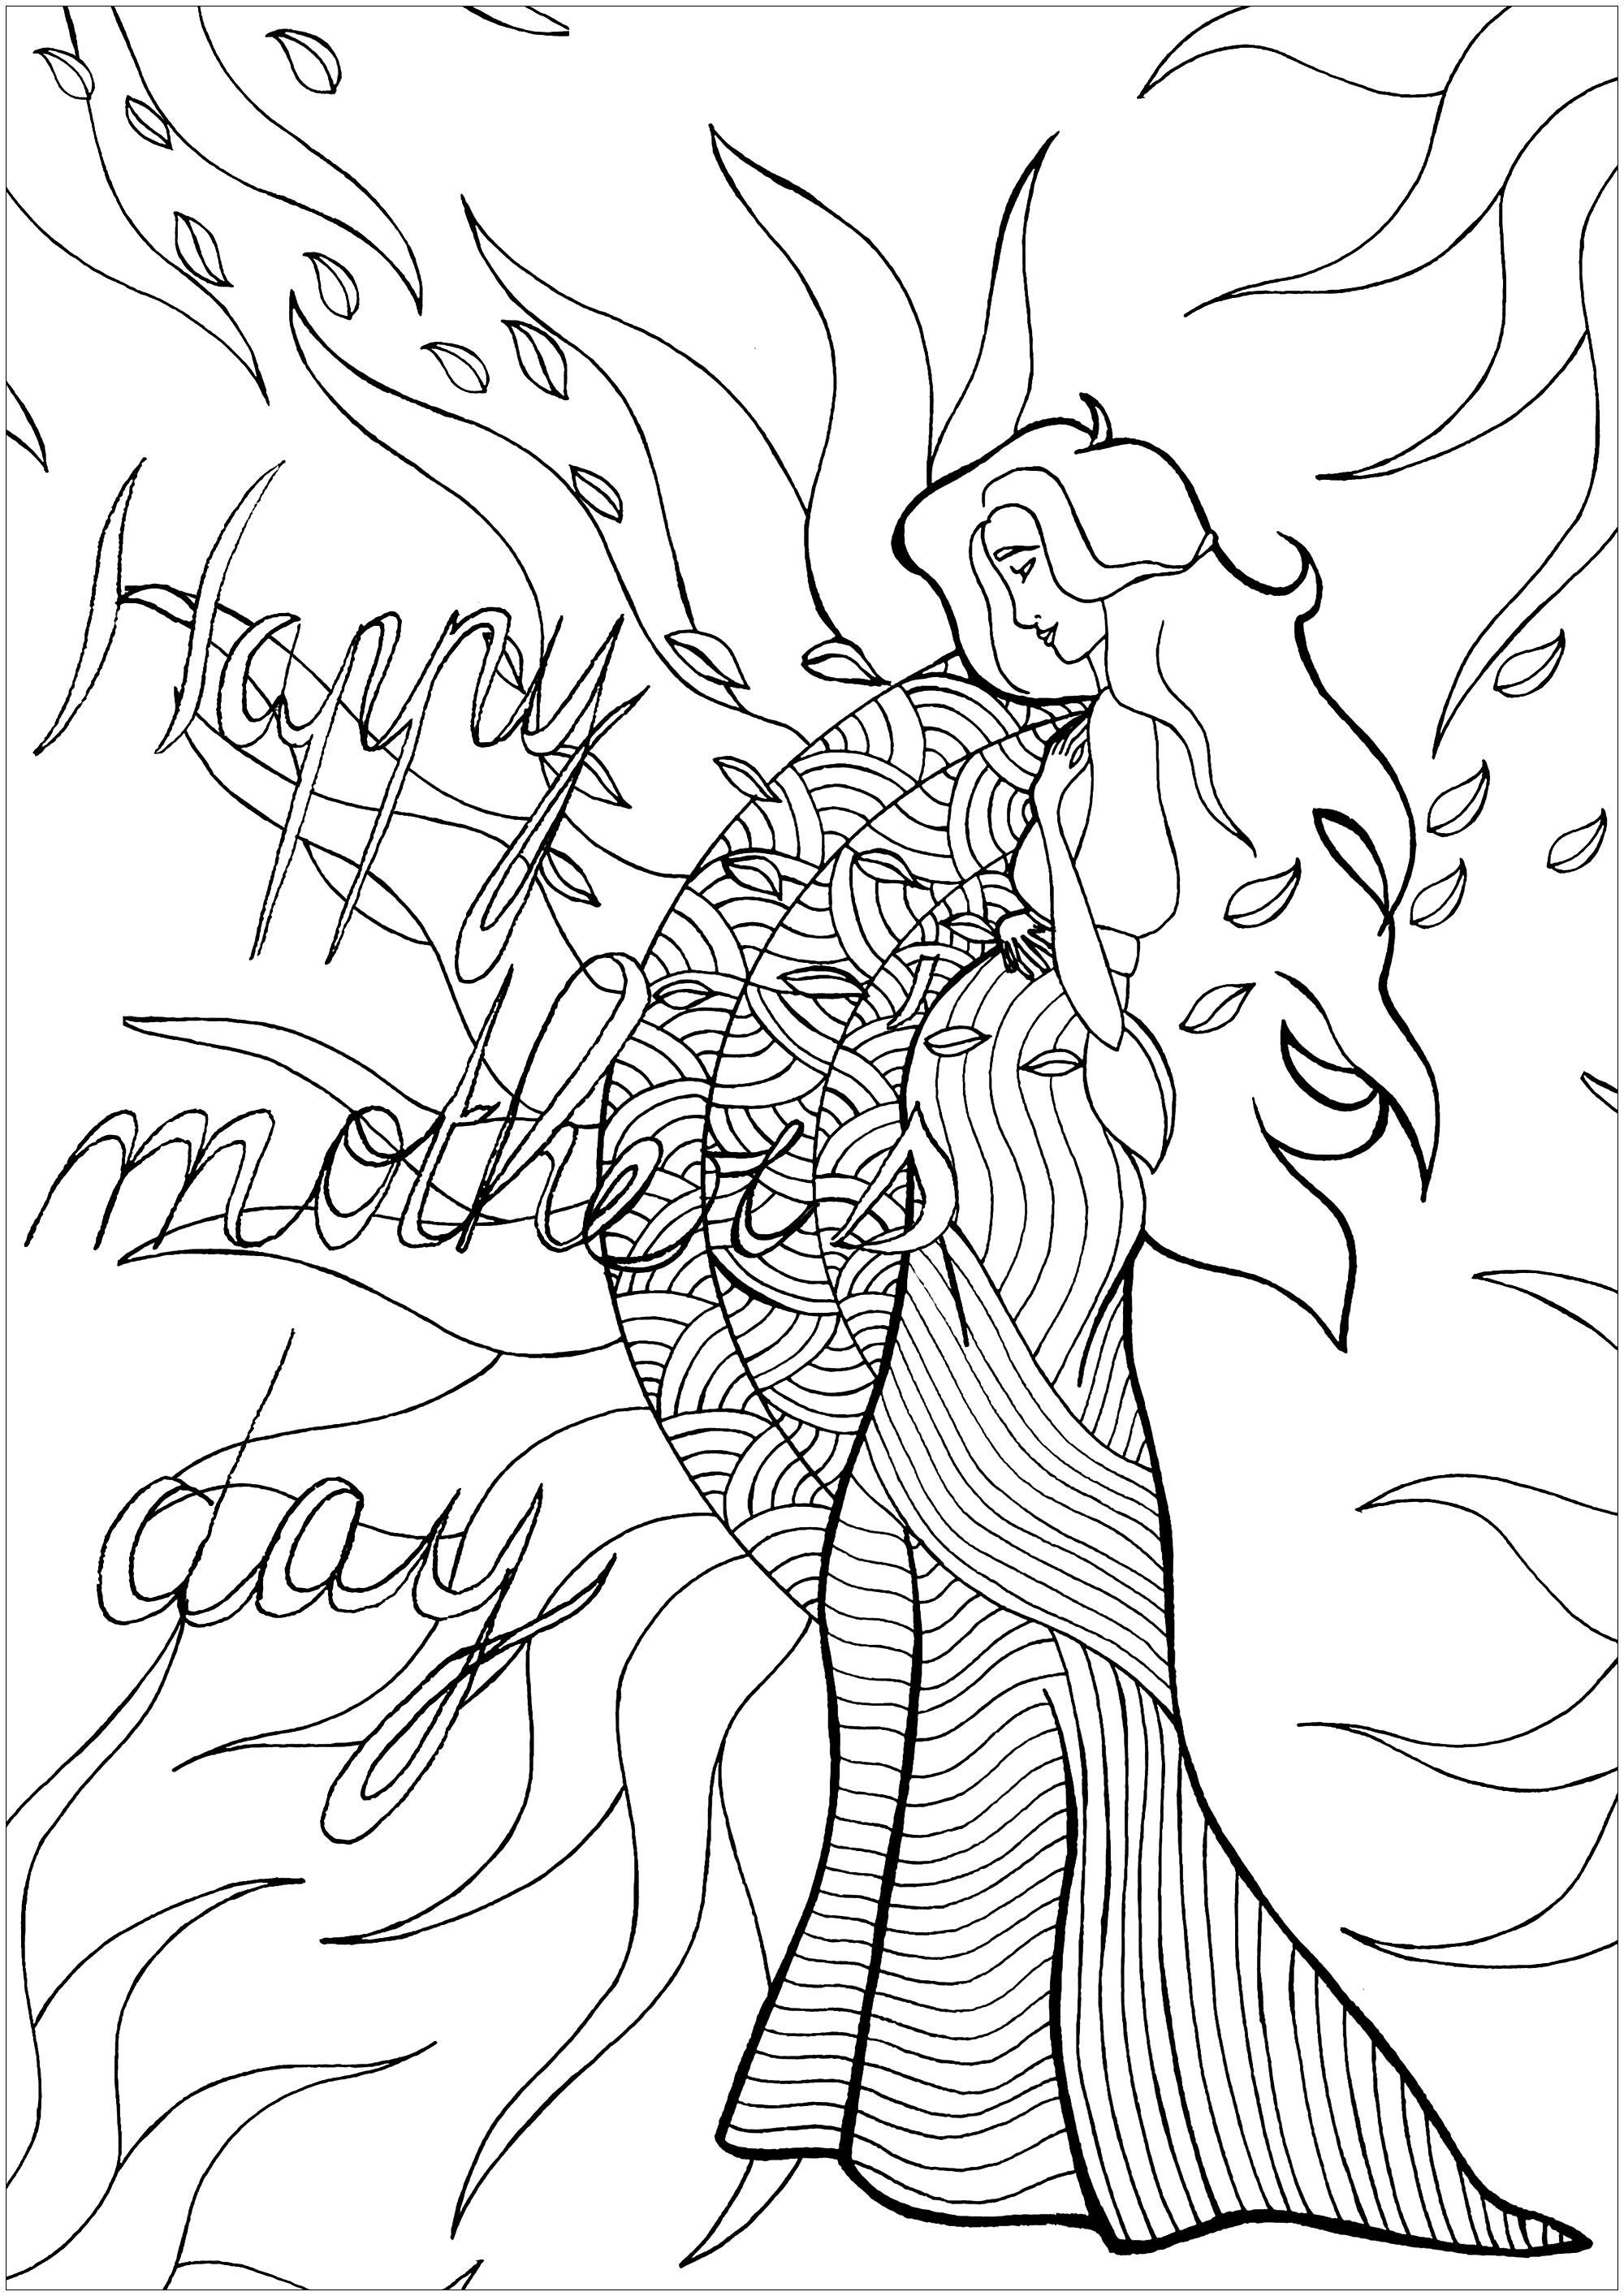 'Give life' : an exclusive coloring page to celebrate Mother's day